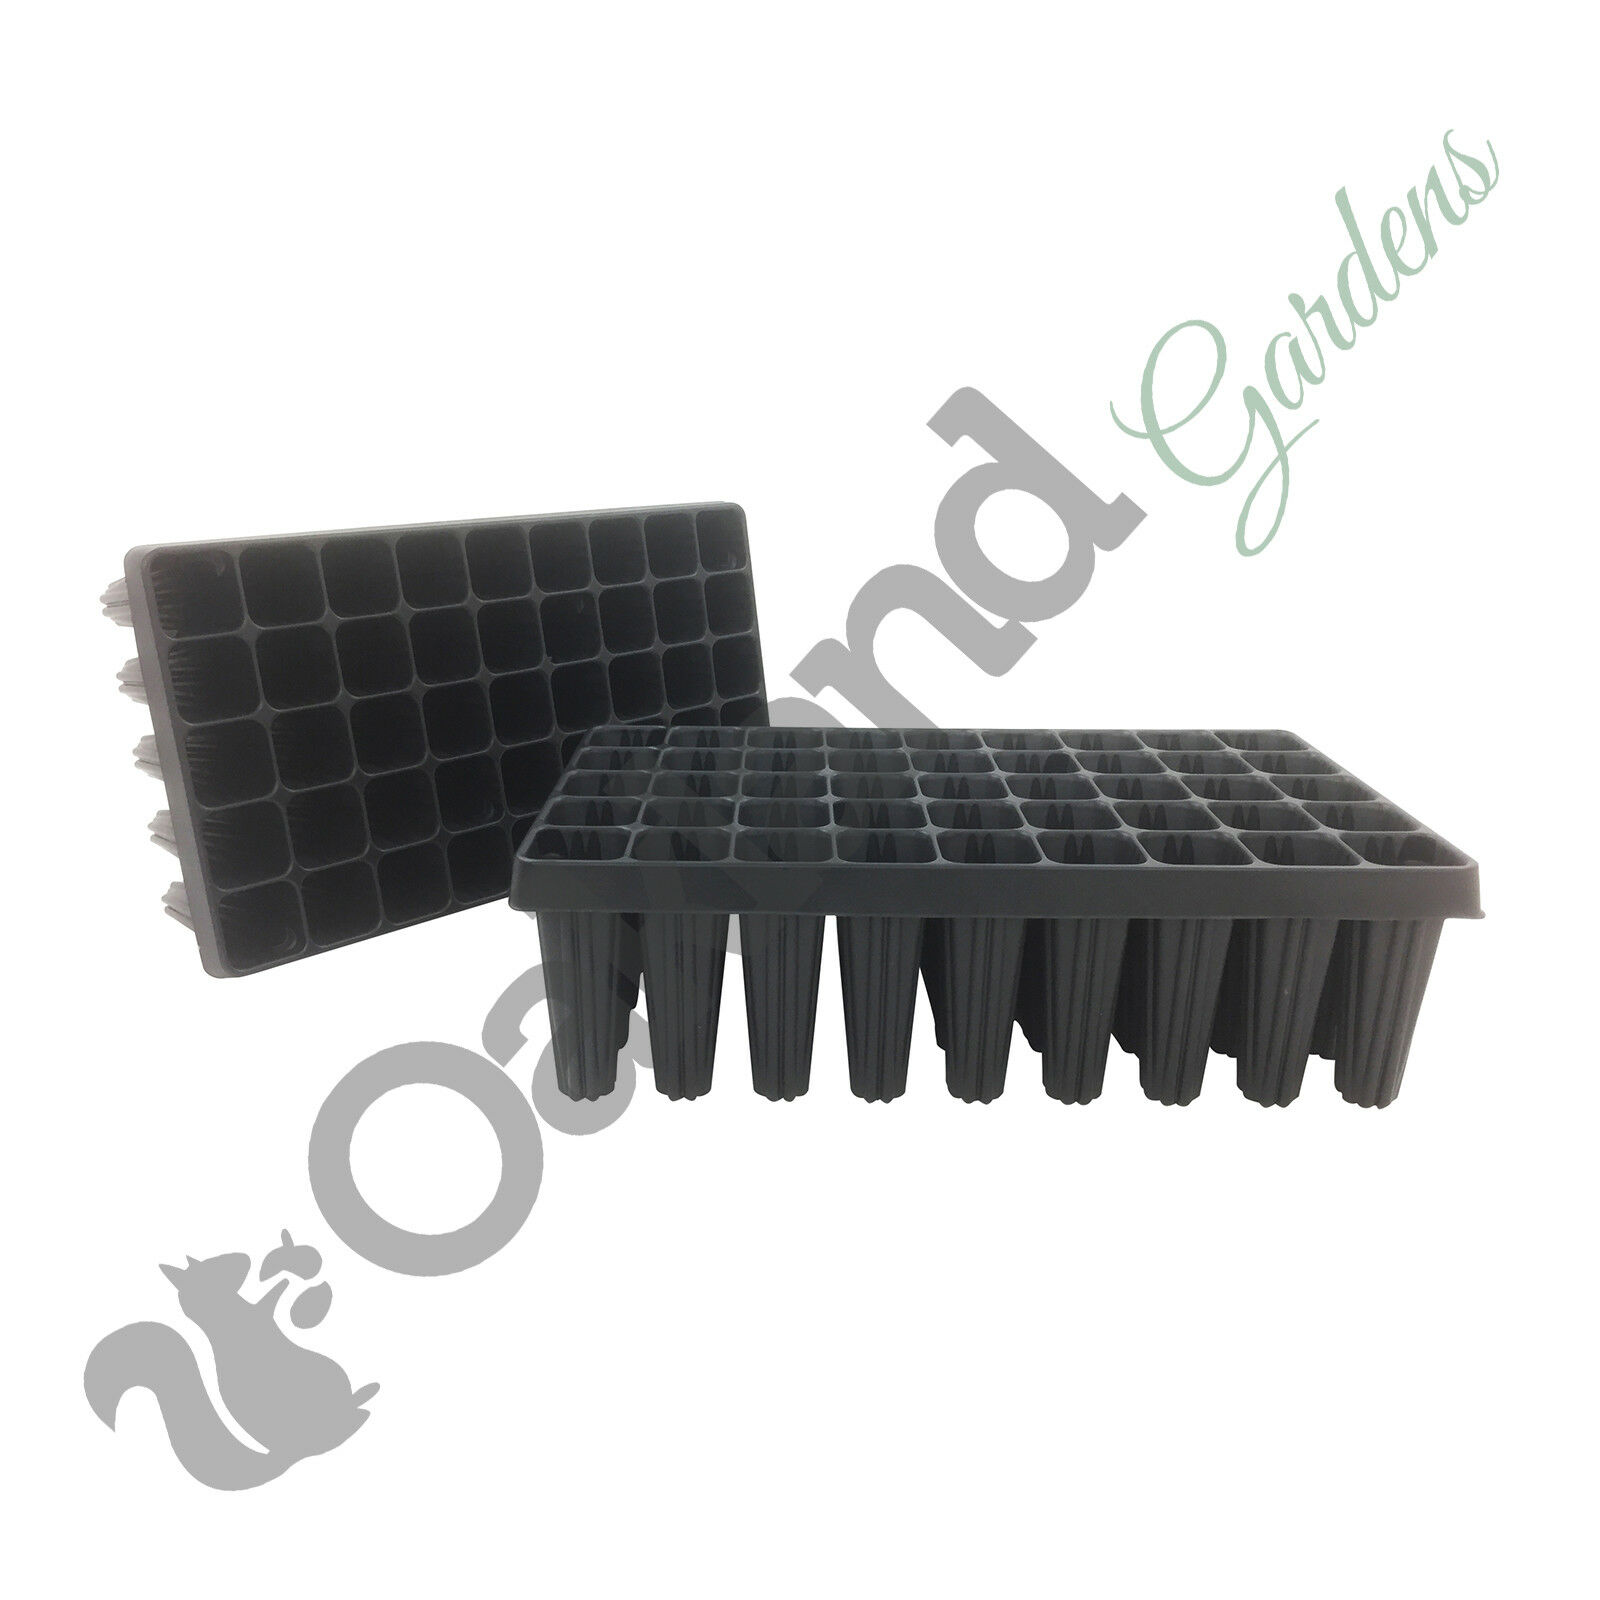 20 x 45 Cell Deep Rootrainers Plug Plant Seed Tray Root trainers Extra Large